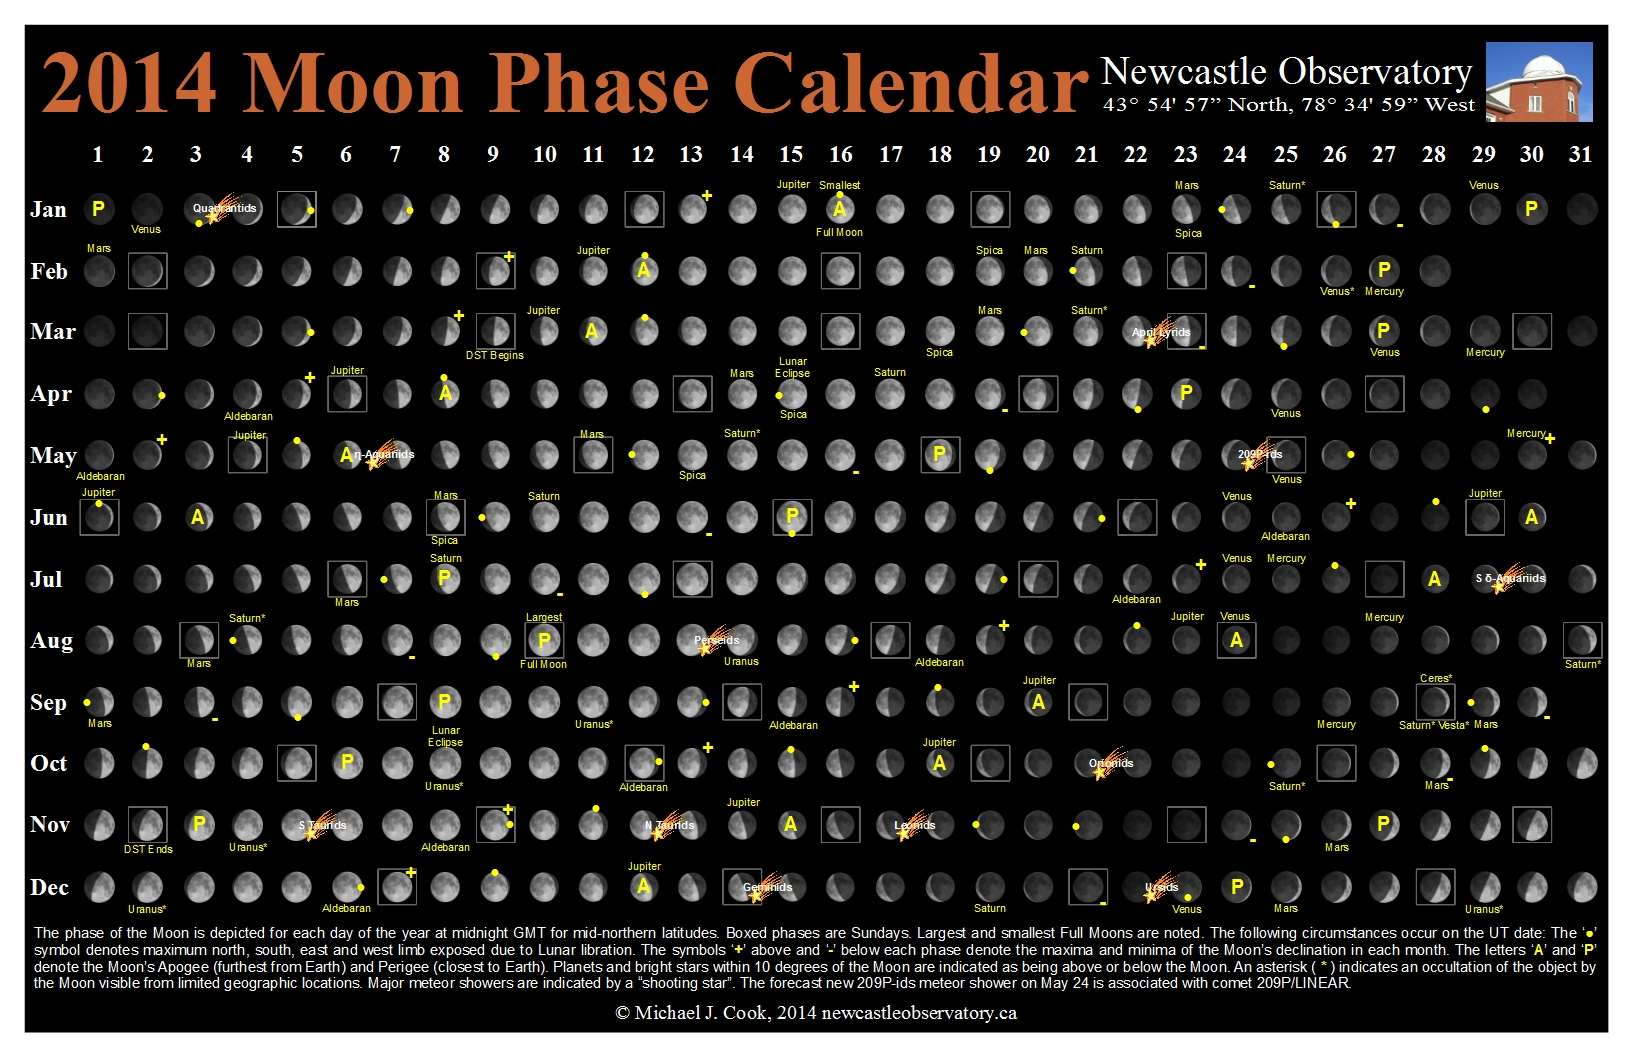 2014 Moon Phase Calendar | Newcastle Observatory